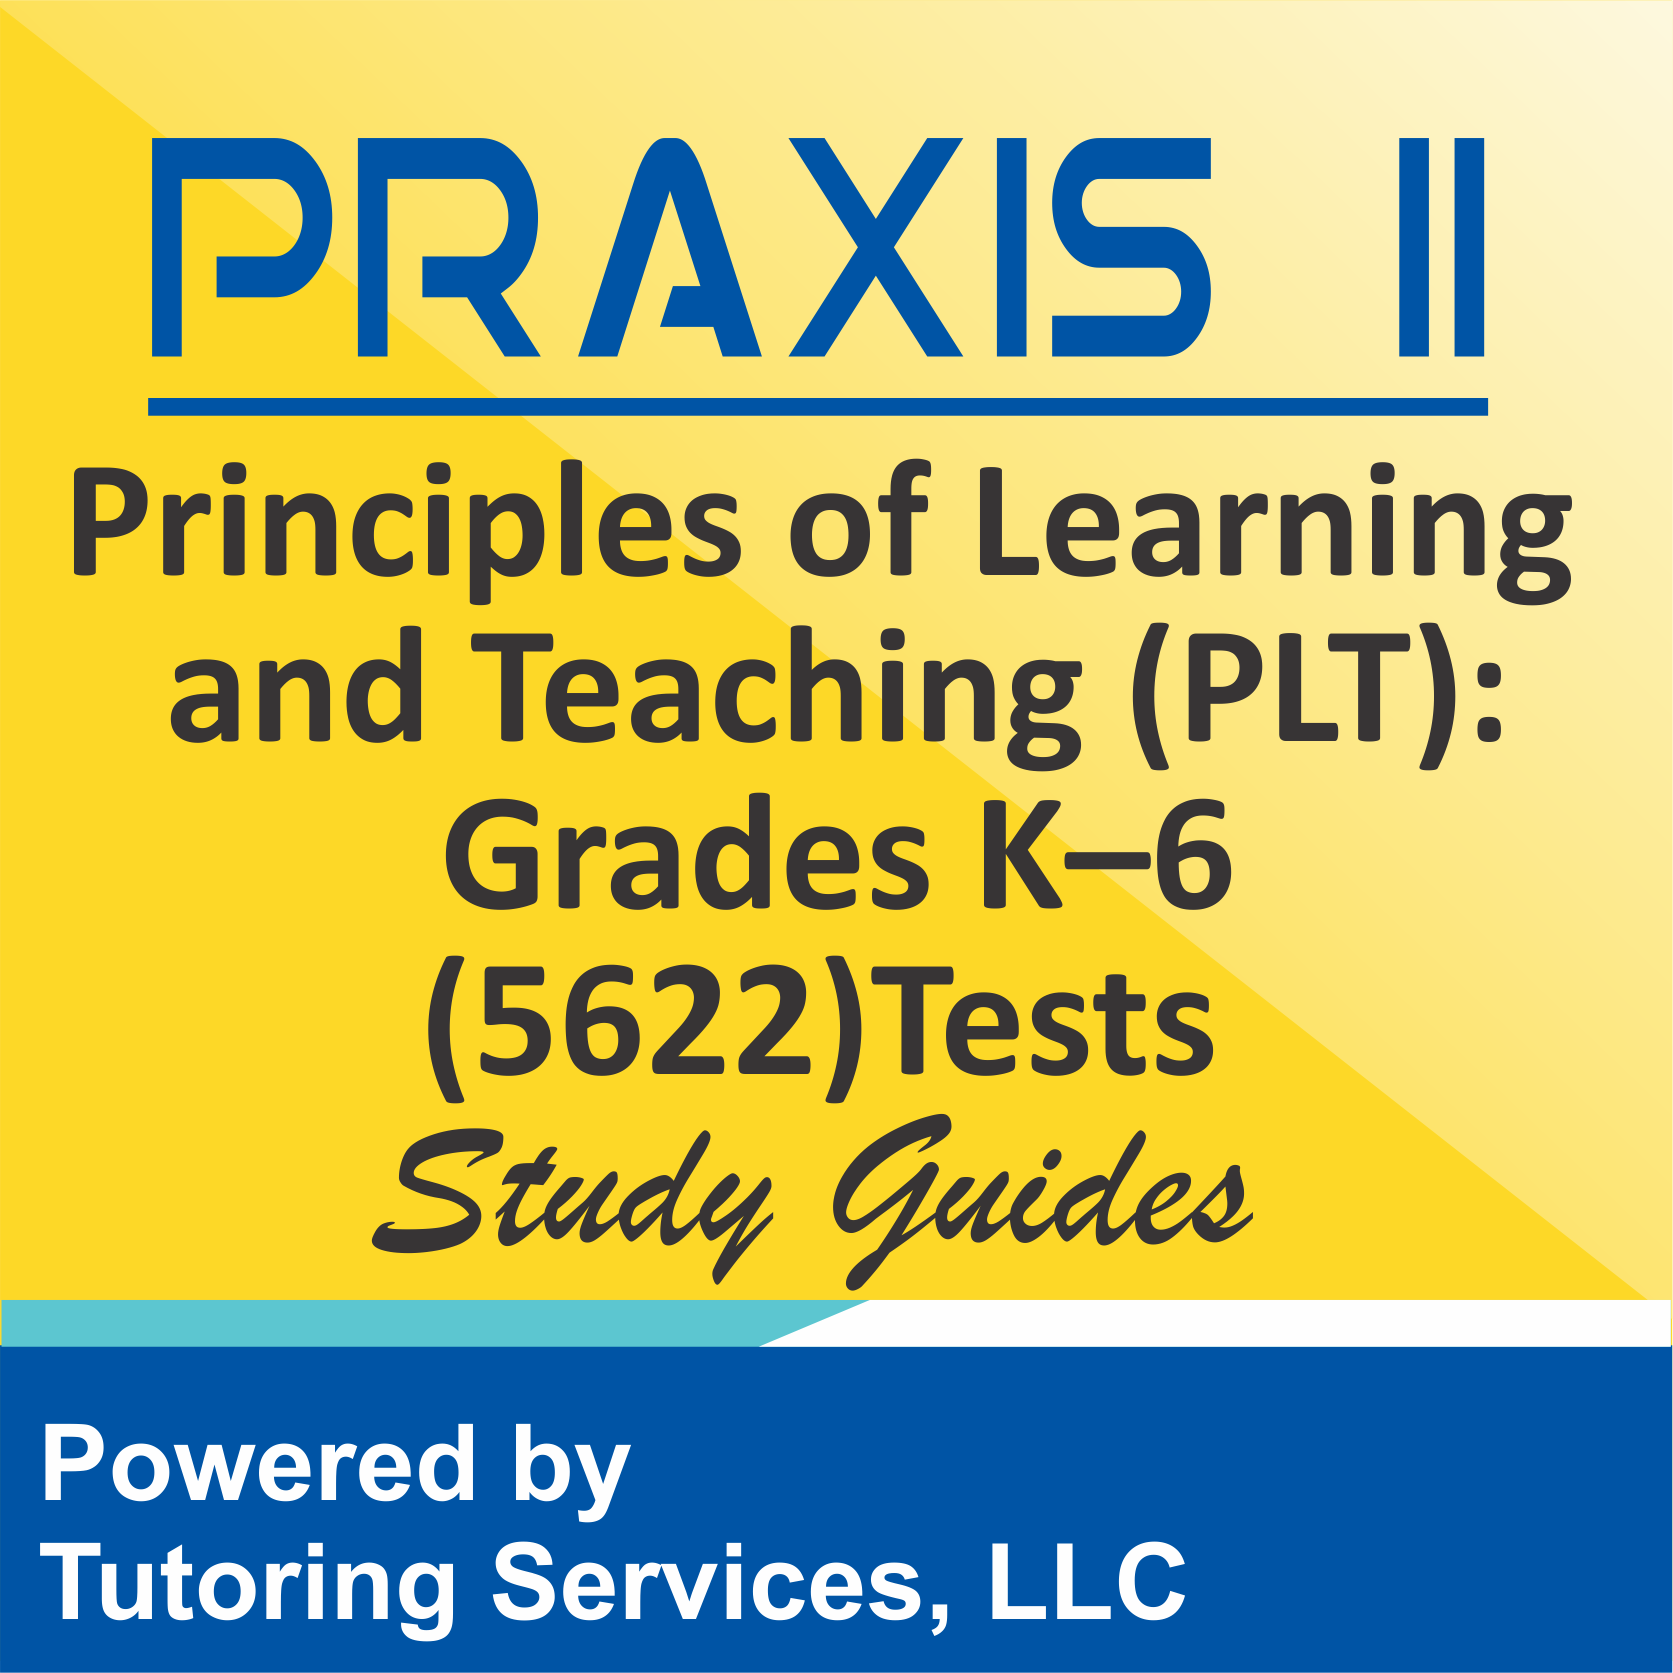 Praxis II Principles of Learning and Teaching: Grades K-6 (5622) Test